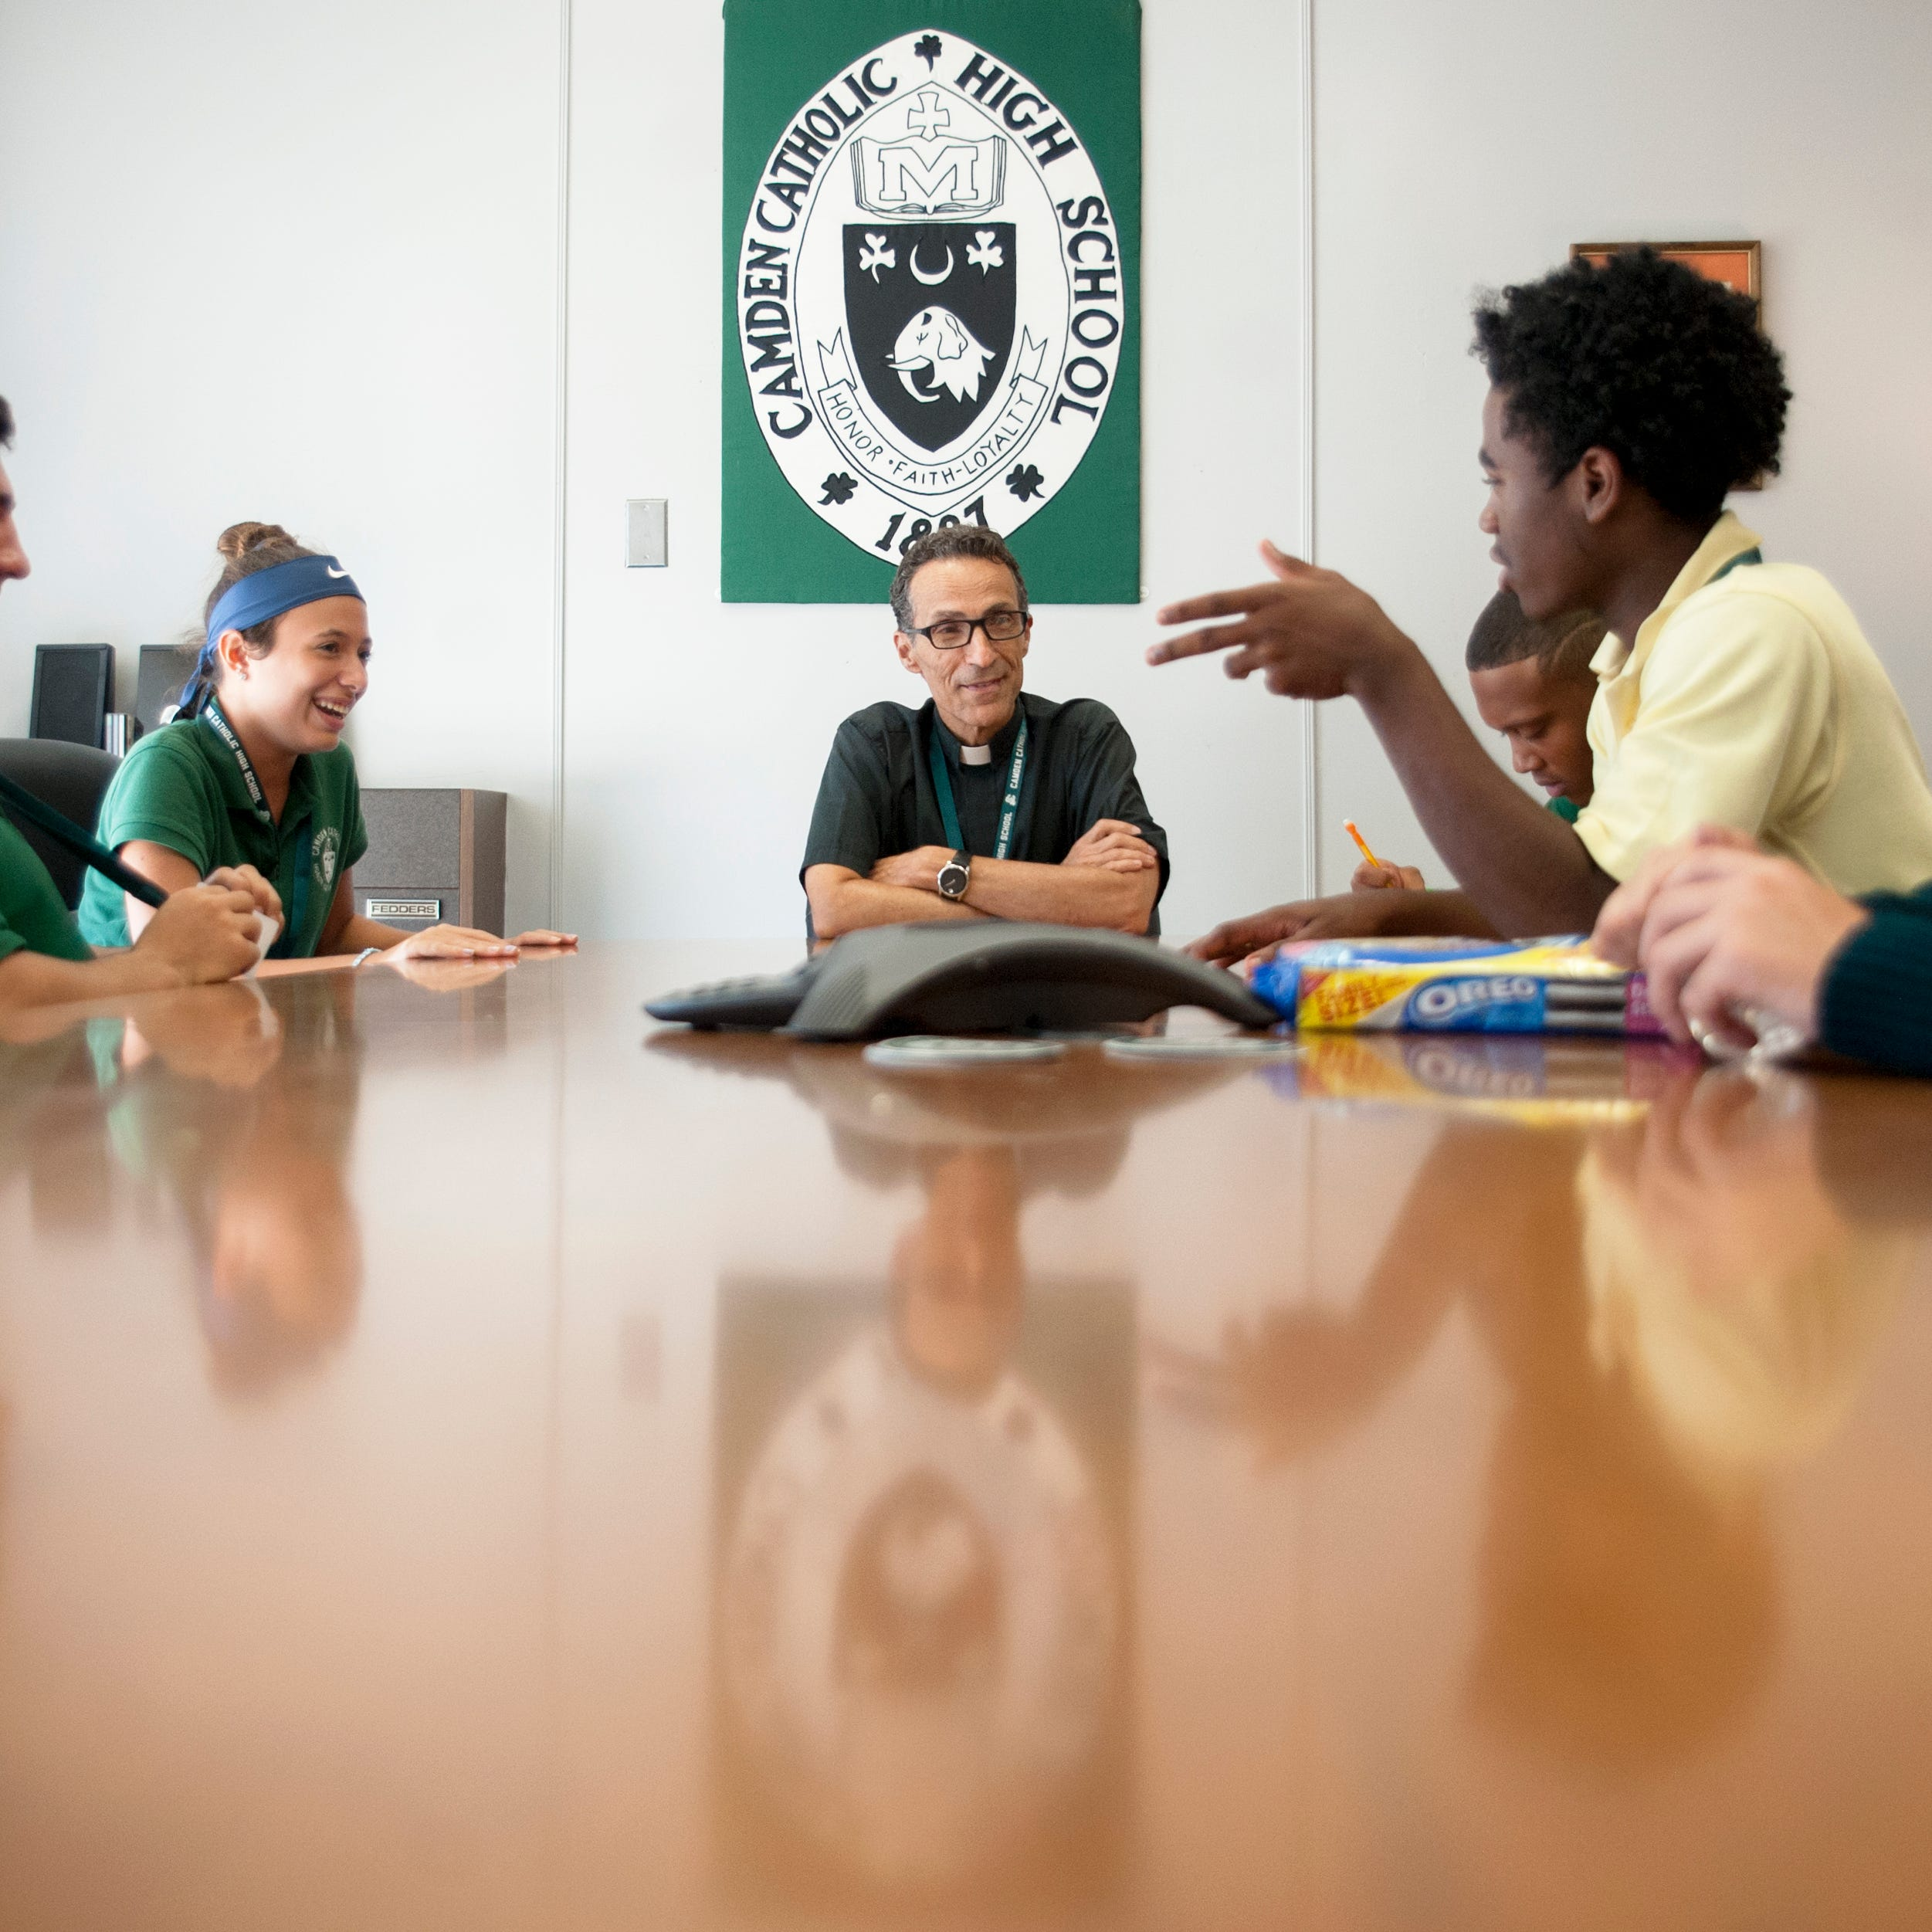 Shake-ups and soul-searching at Camden Catholic after coach fired